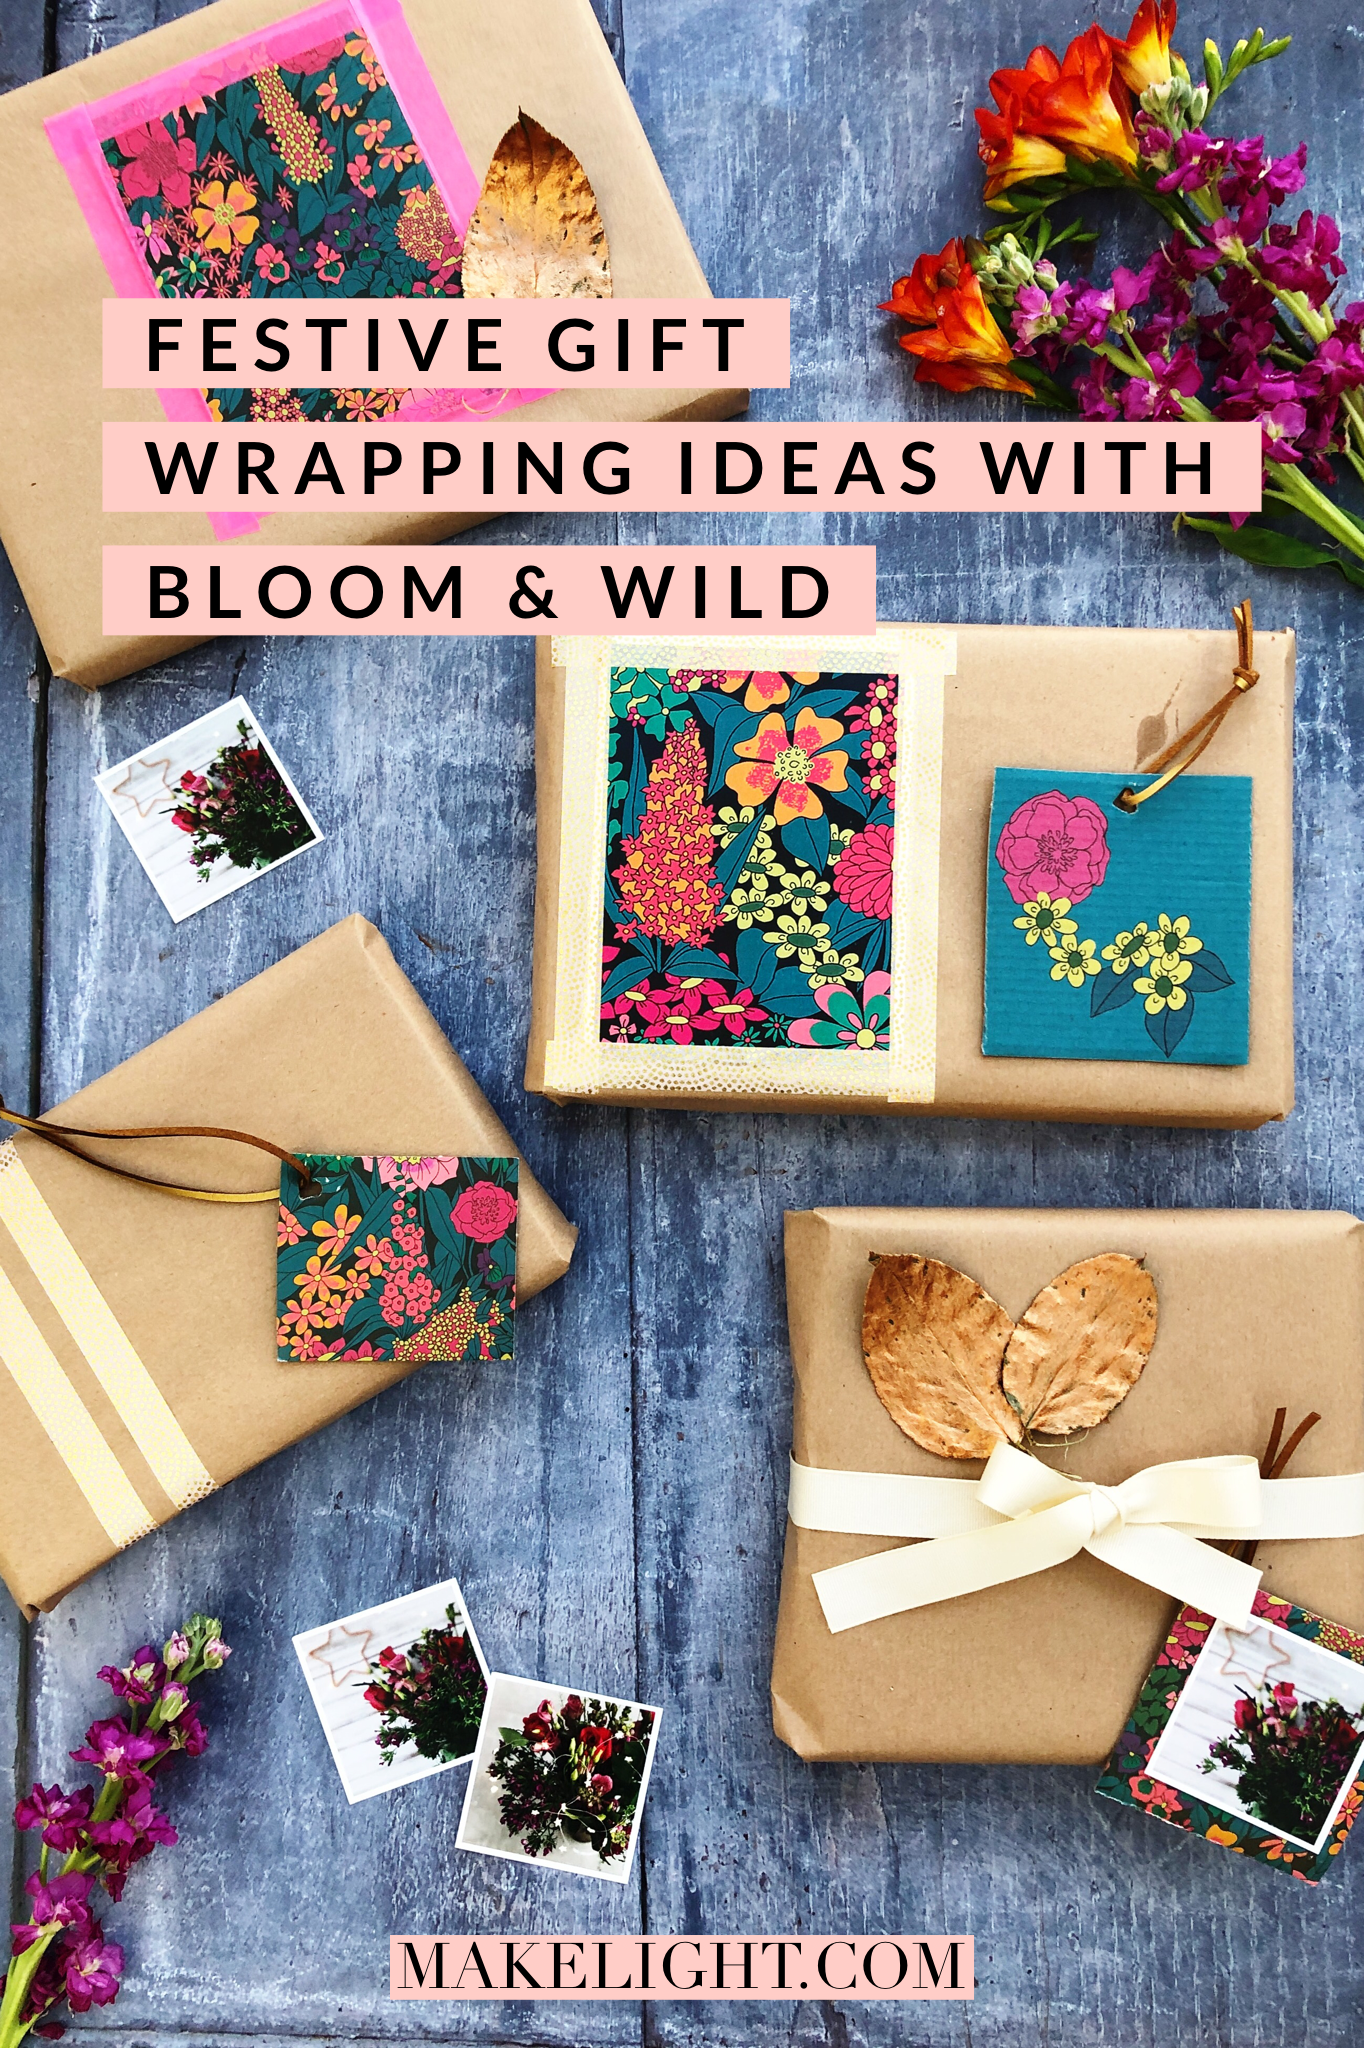 Beautiful gift wrapping ideas with Bloom & Wild